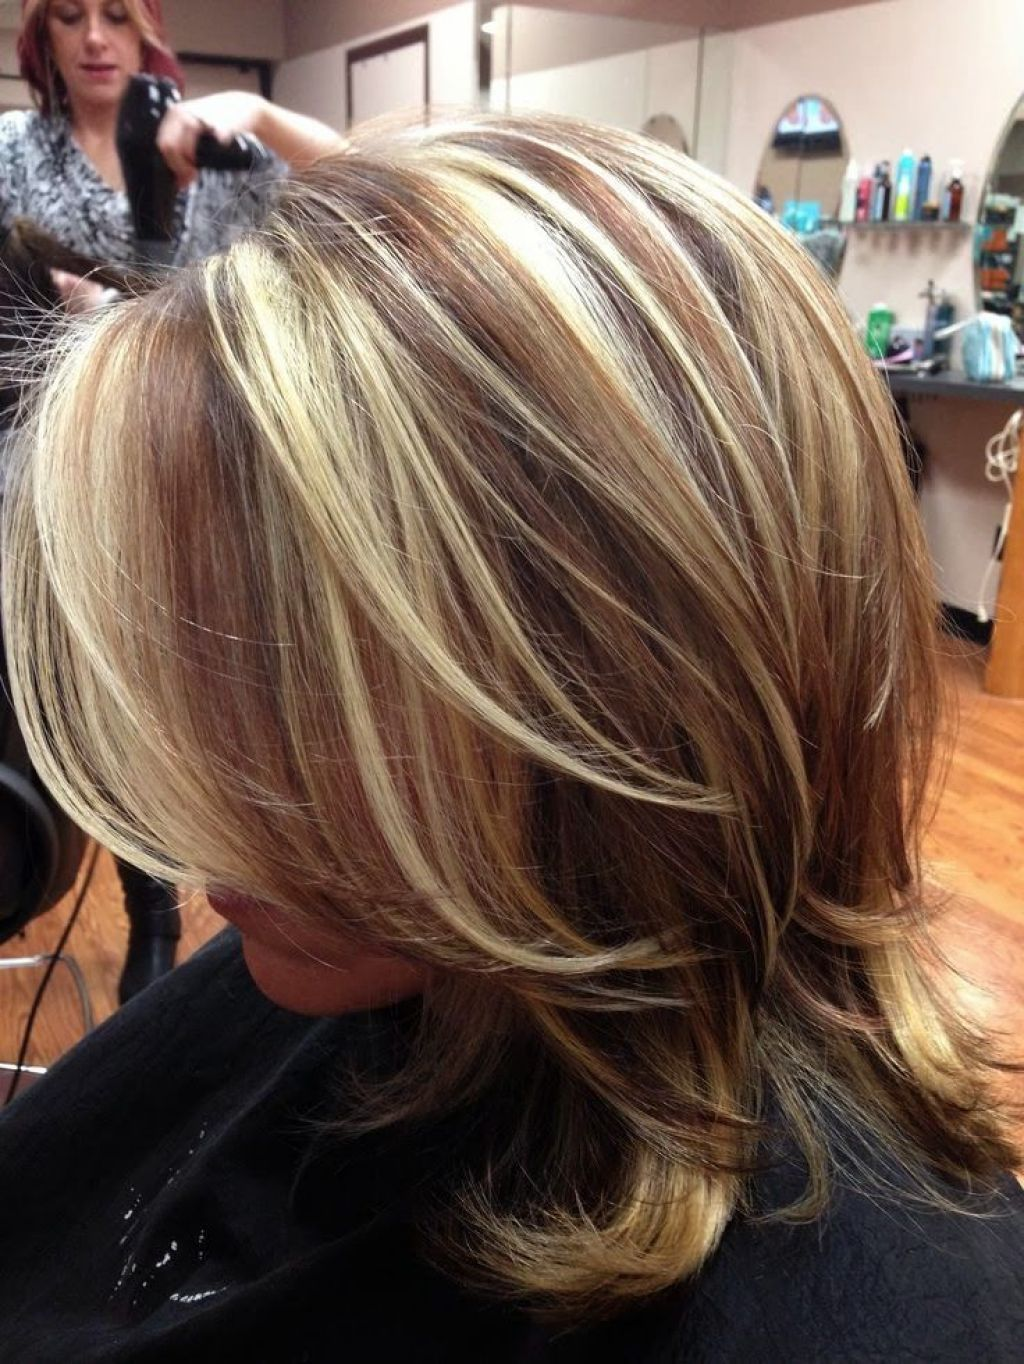 Long Hairstyles And Color Highlights And Lowlights Ideas 4 Hair Color Highlight And Lowlight